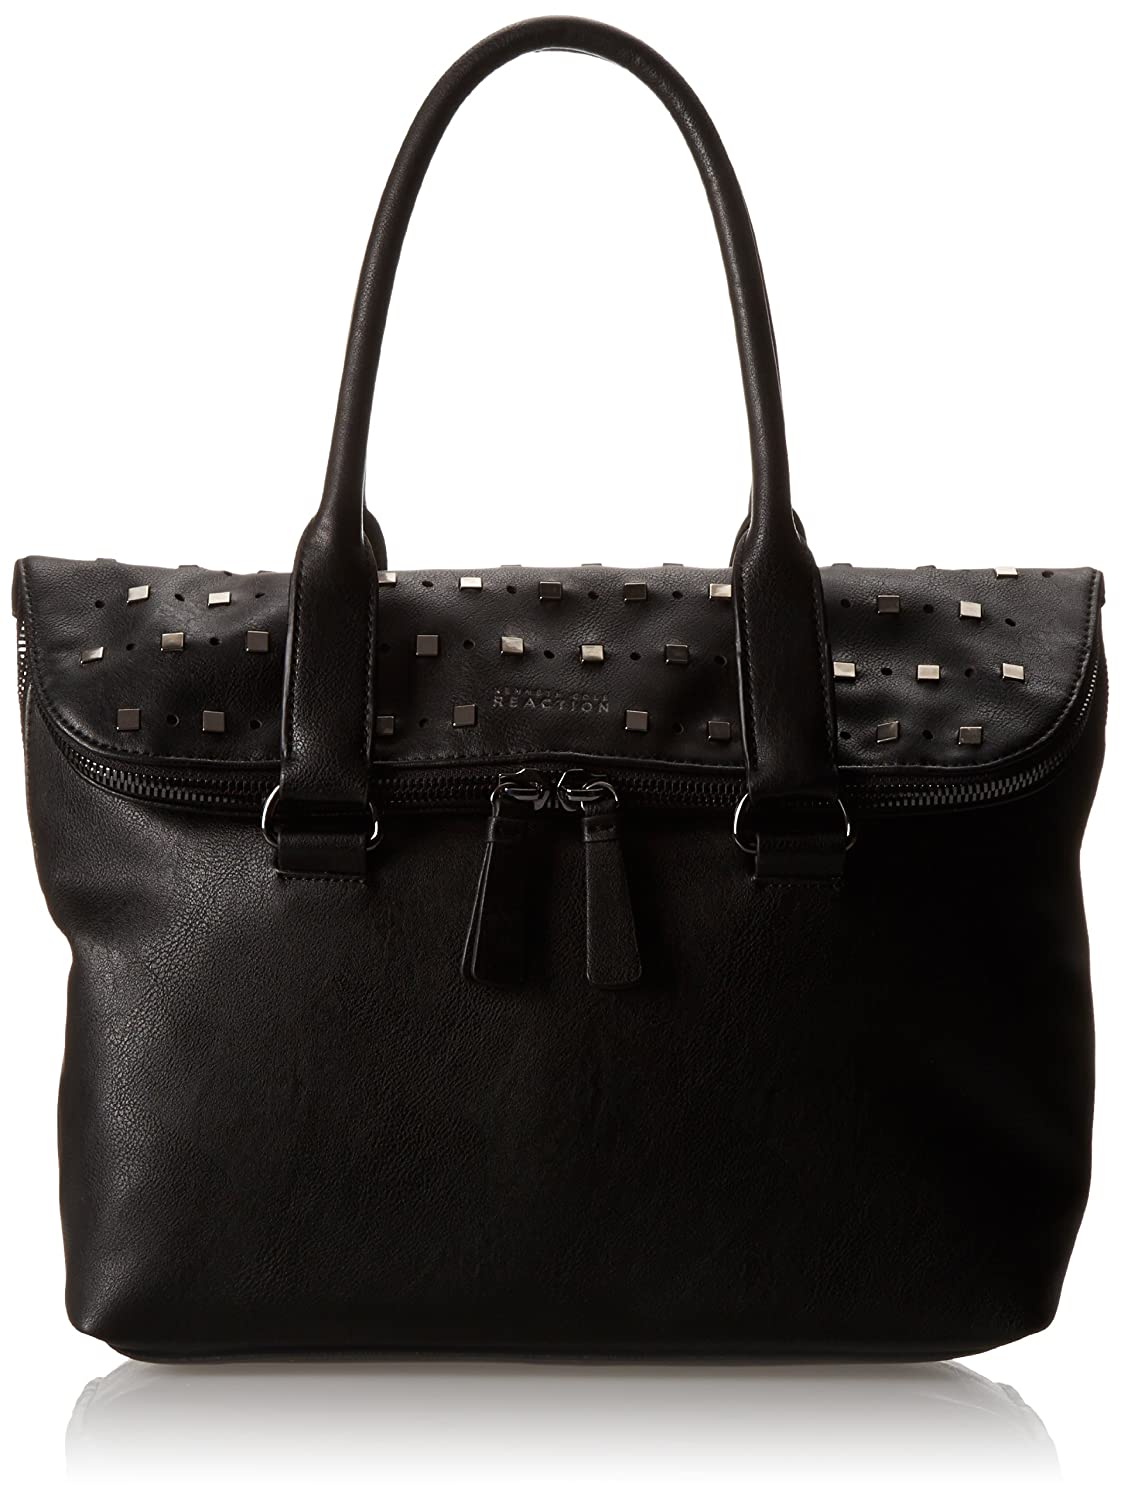 Kenneth Cole Reaction From The Top Studded Satchel